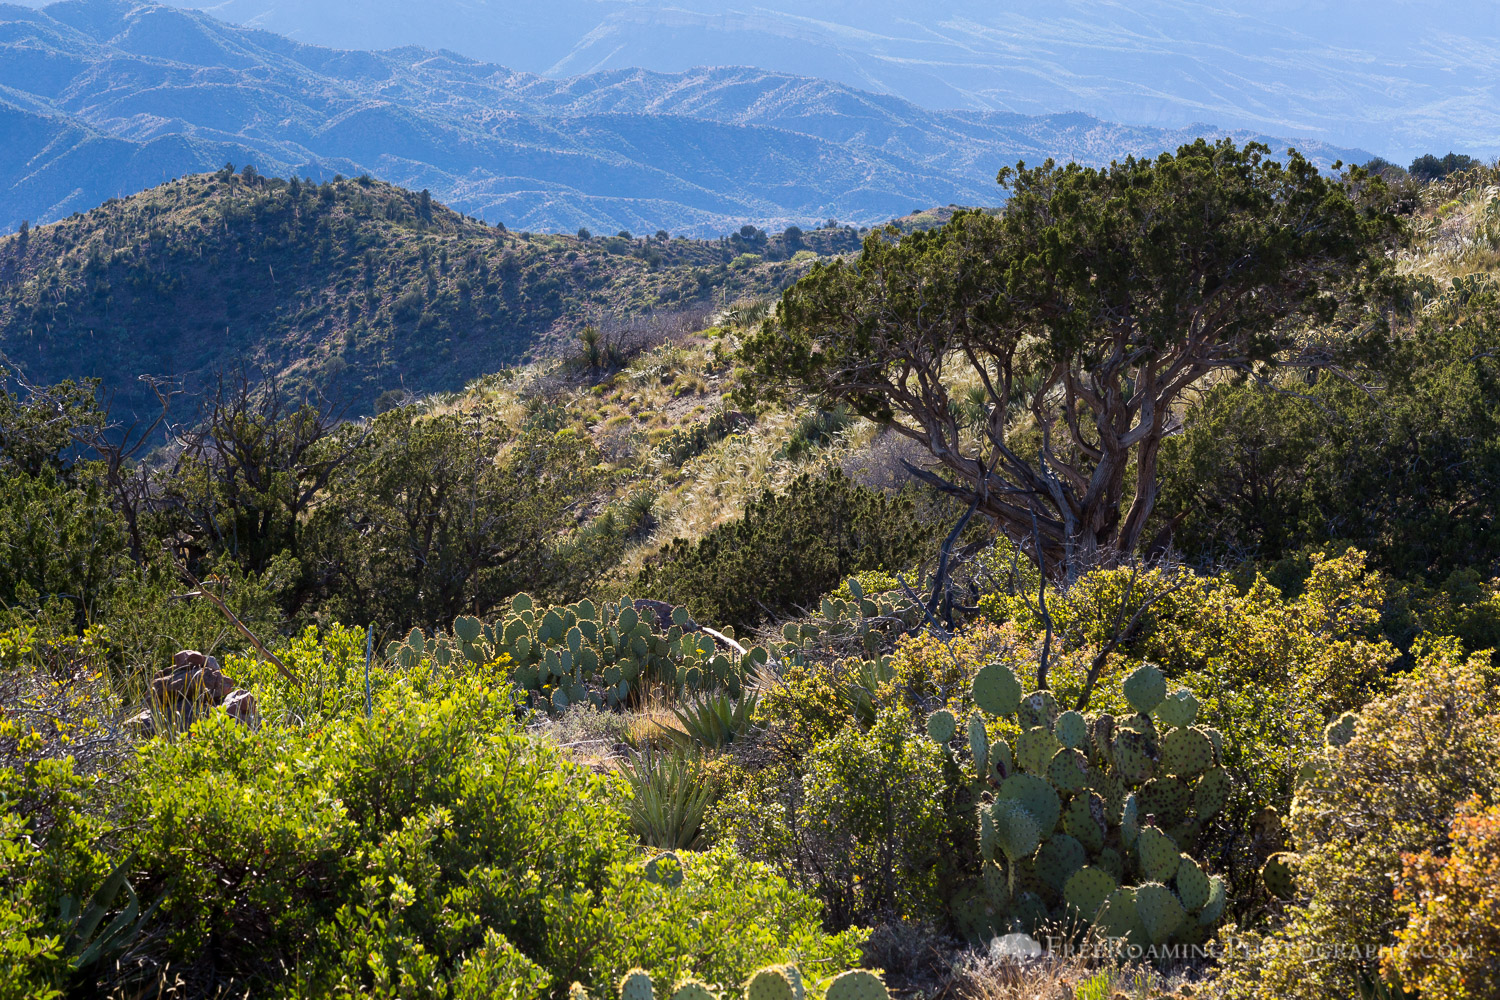 Juniper Trees and Cactus